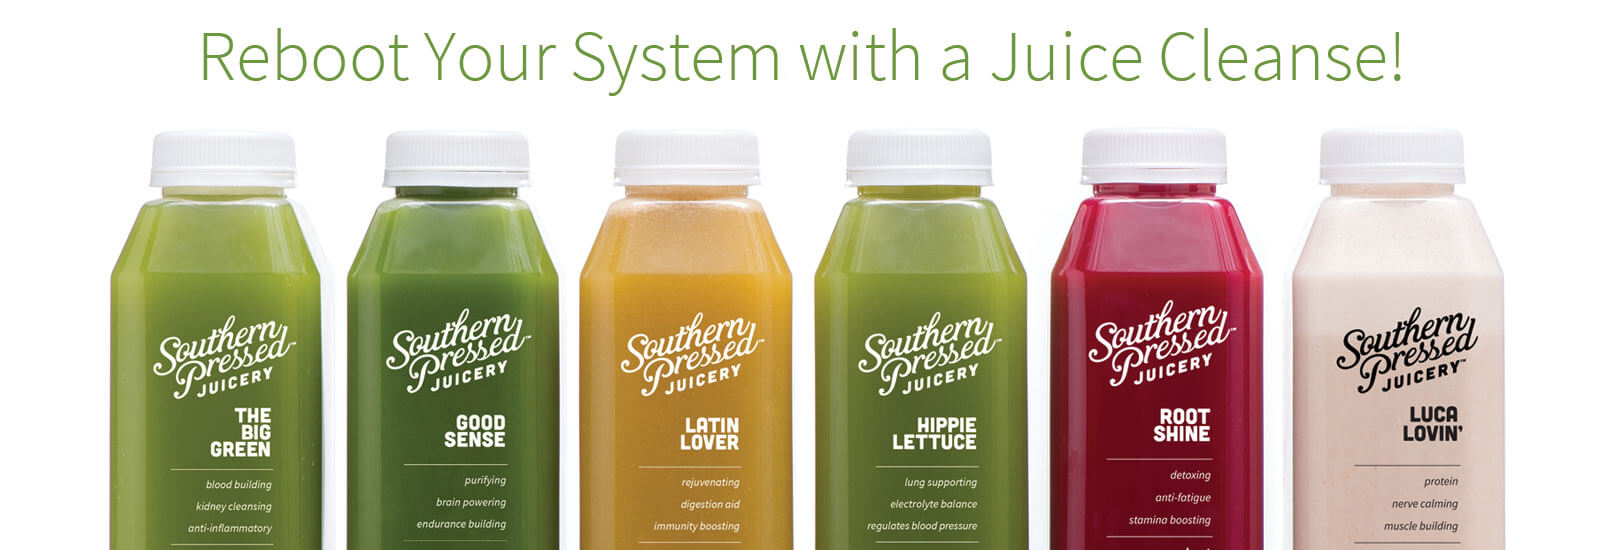 Slow Pressed Juice Benefits : Home - Southern Pressed Juicery